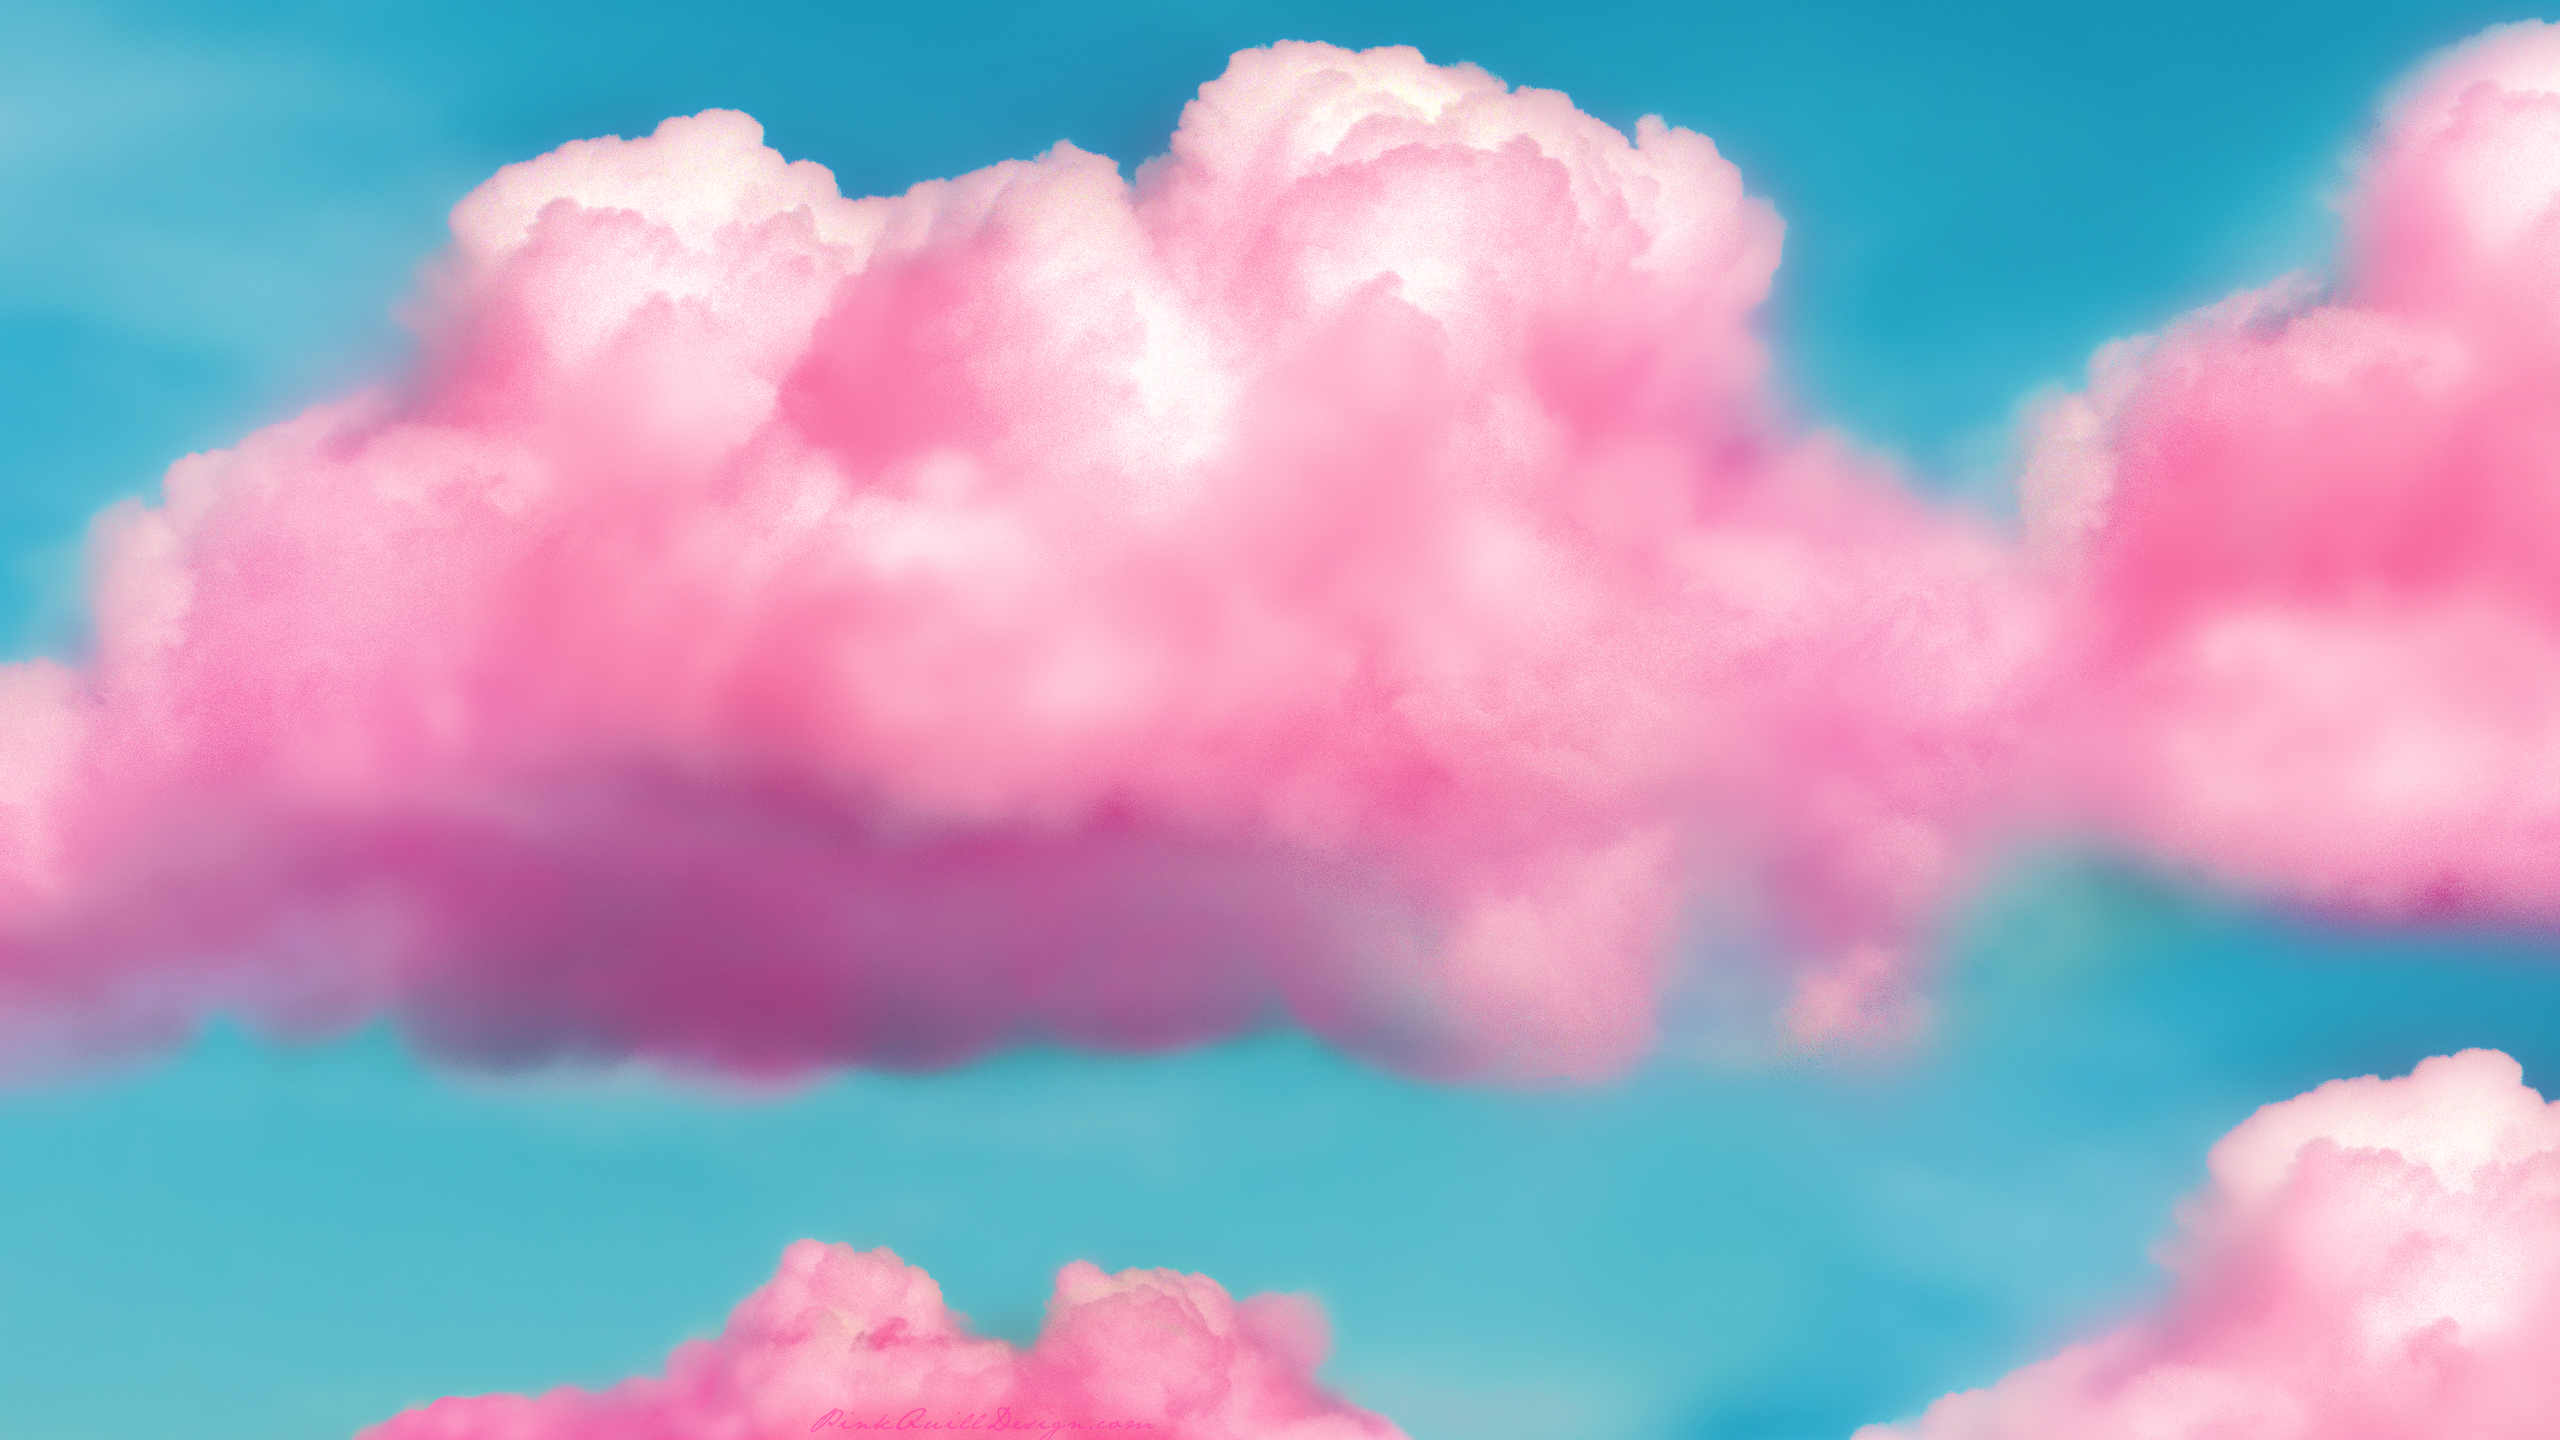 Pink Fluffy Clouds HD Wallpaper by pinkquilldesign on ...